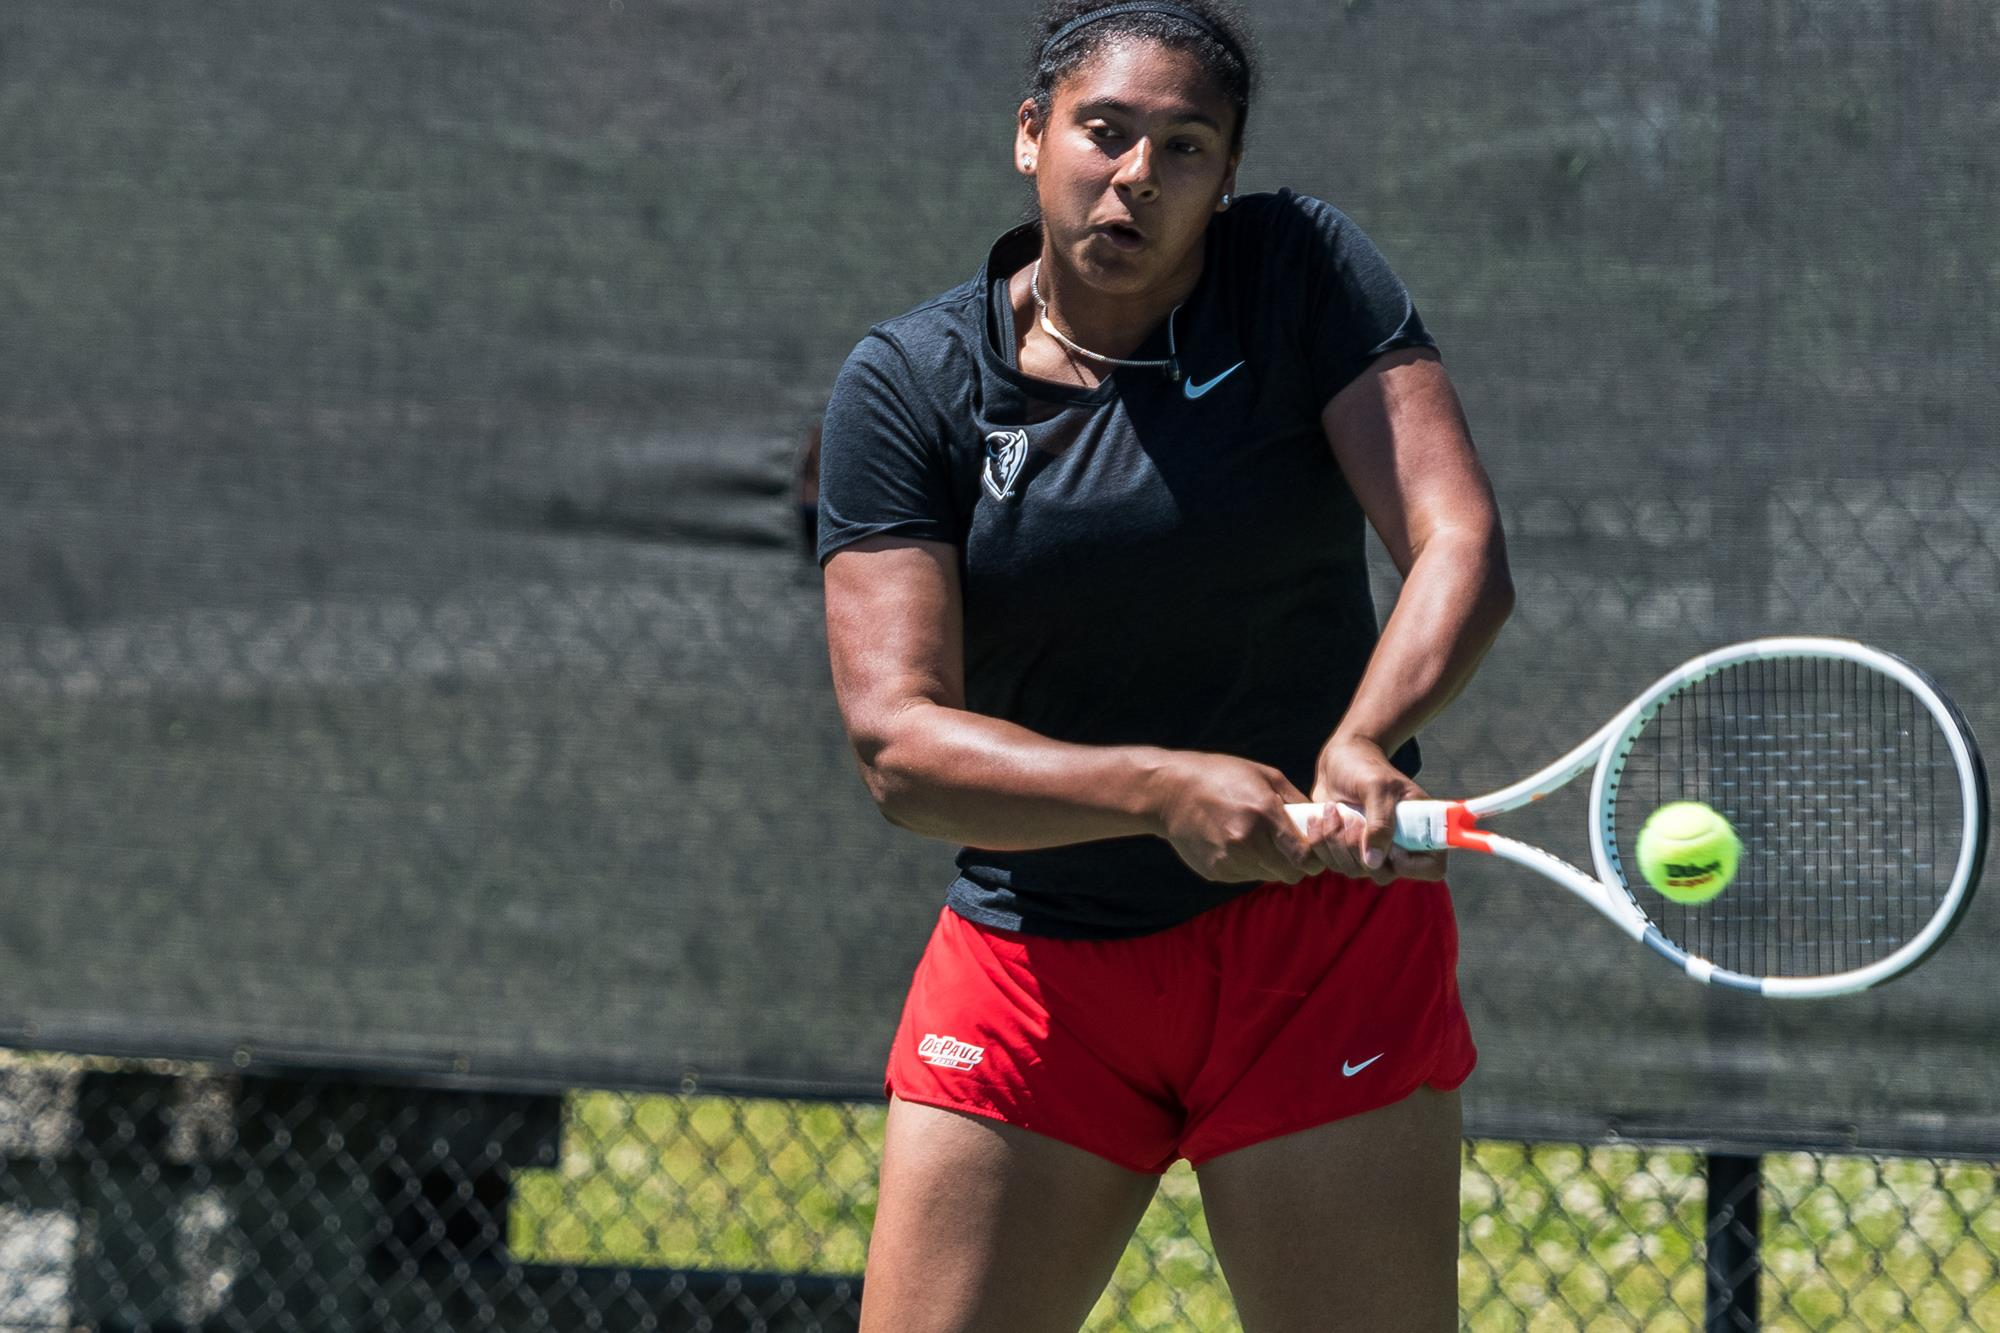 Keisha Clousing Women S Tennis Depaul University Athletics The official site of the european tennis federation, which is comprised of 50 member nations and administers over 1,200 tennis events annually including the tennis europe junior tour. keisha clousing women s tennis